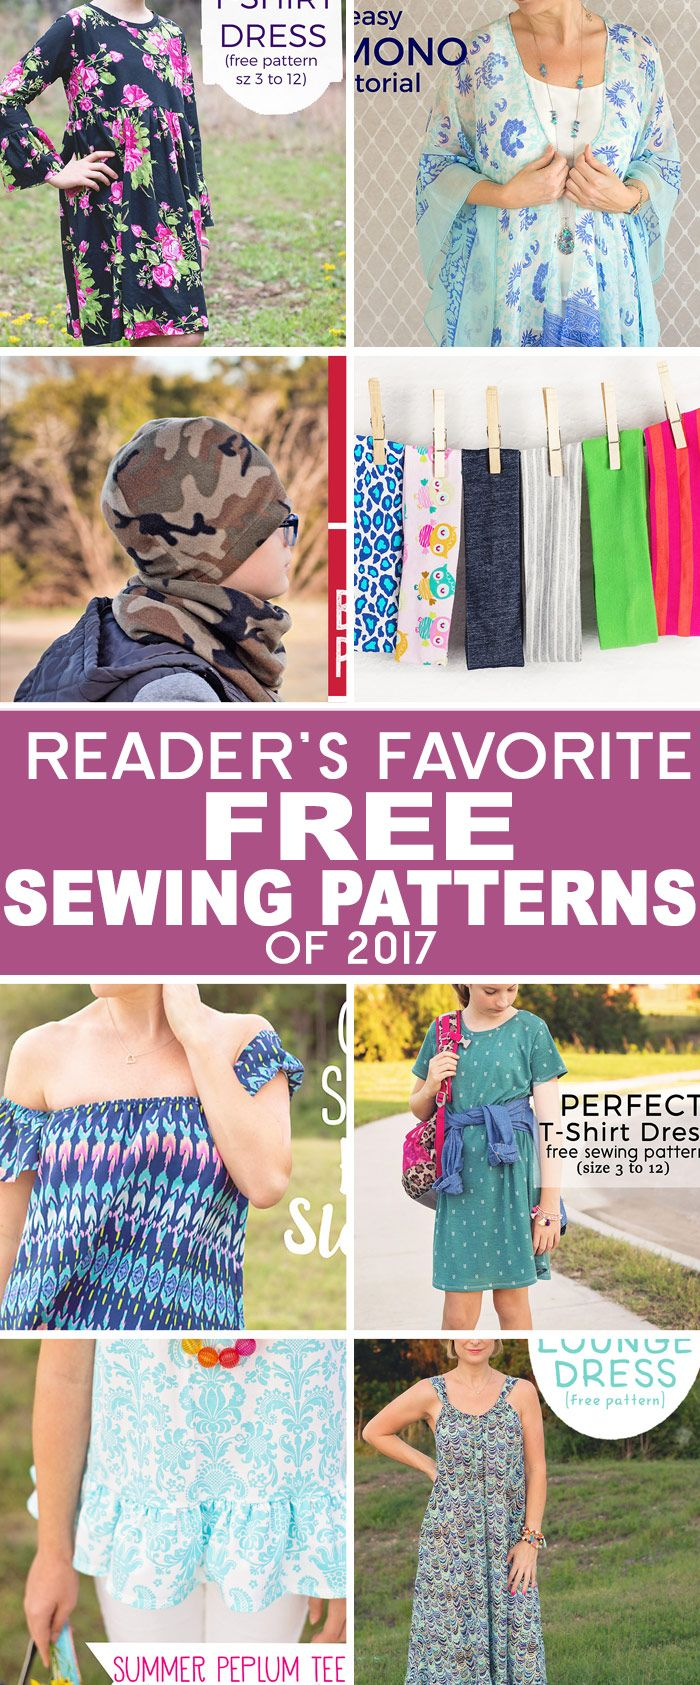 Best free sewing patterns and craft related posts of 2017!